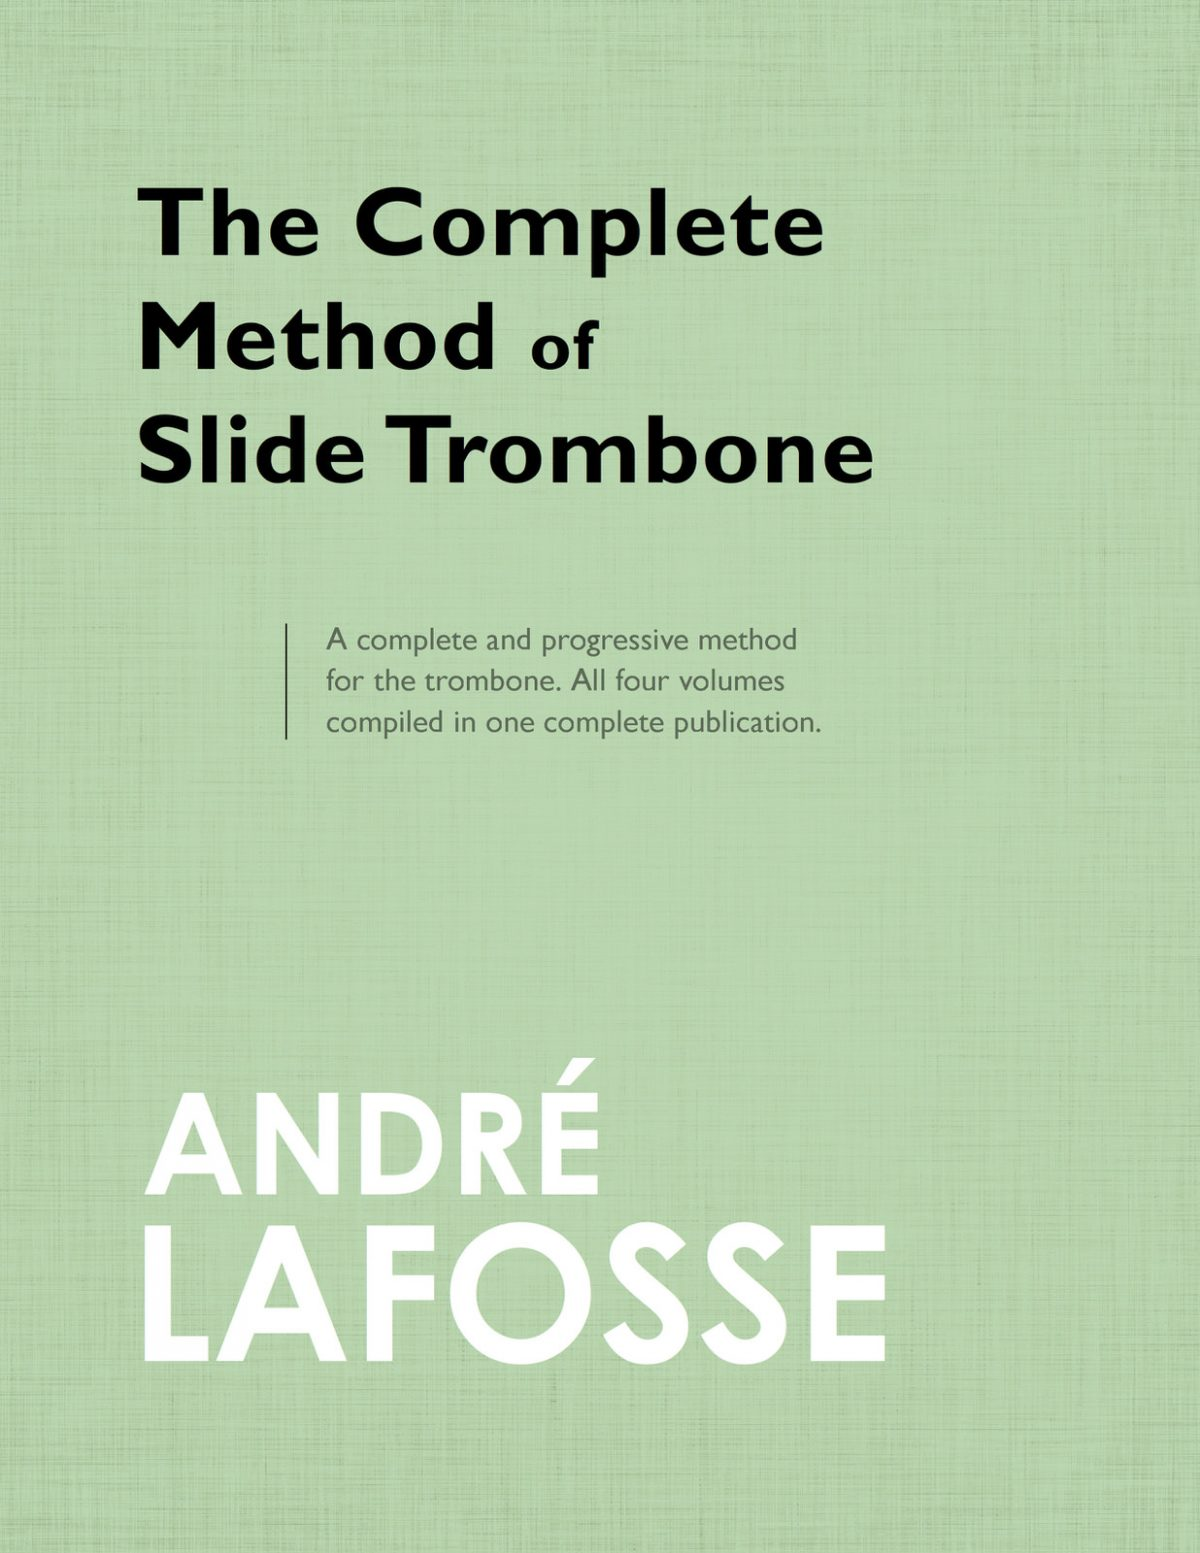 Lafosse, Andre, Complete Method of Slide Trombone-1